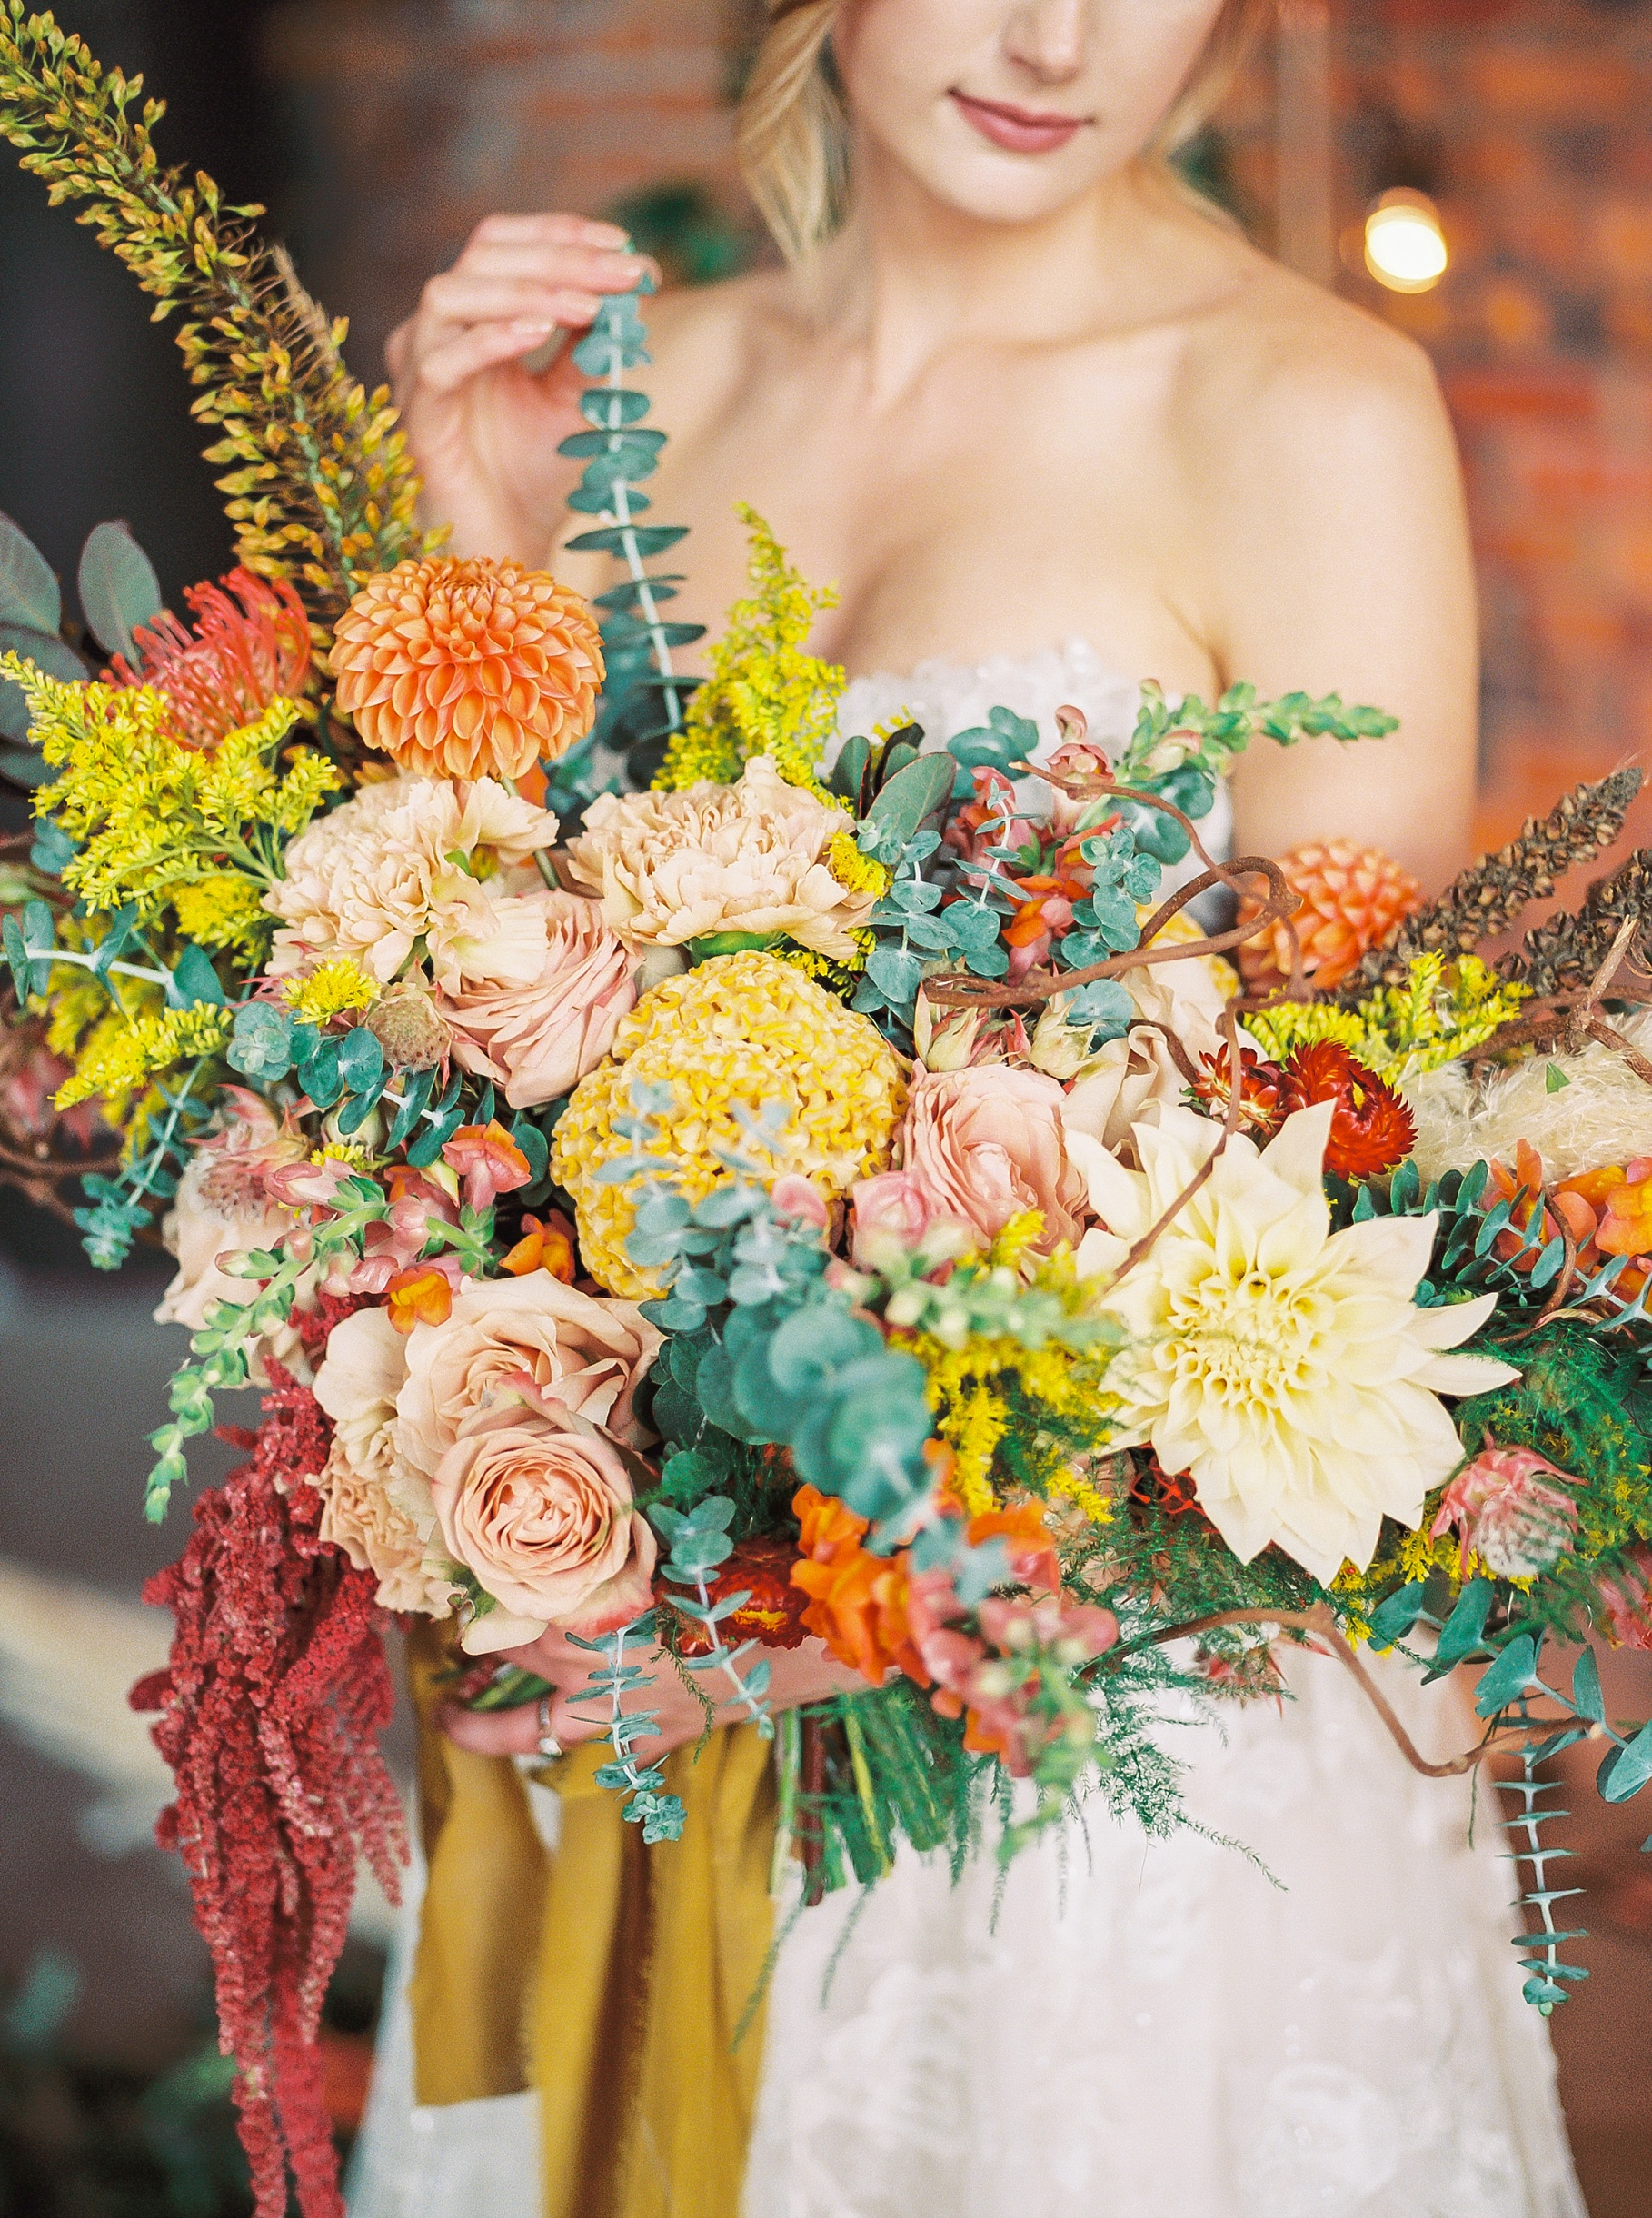 Urban Romance Wedding with Copper Accents at The Millbottom by Kelsi Kliethermes Photography Best Columbia Missouri Wedding Photographer_0046.jpg